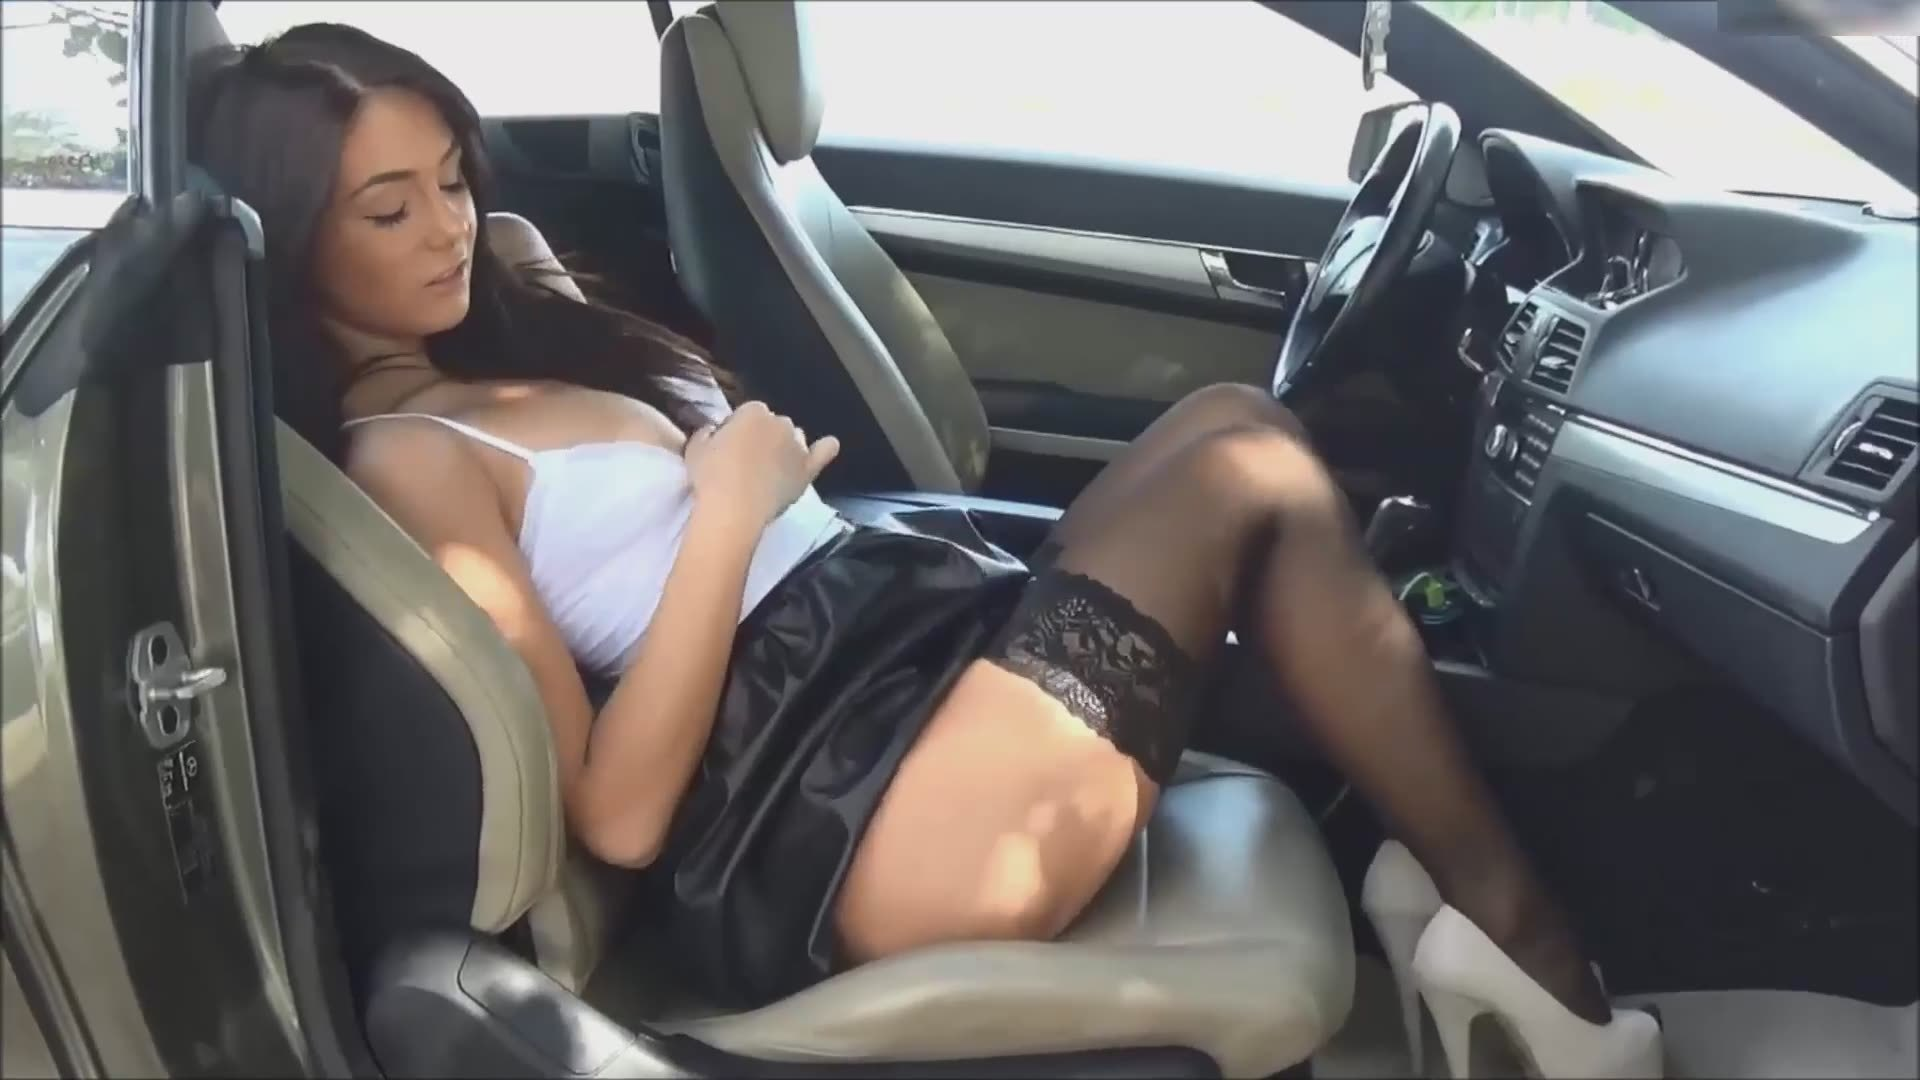 She Stopped The Car To Play With Her Shaved Cunt